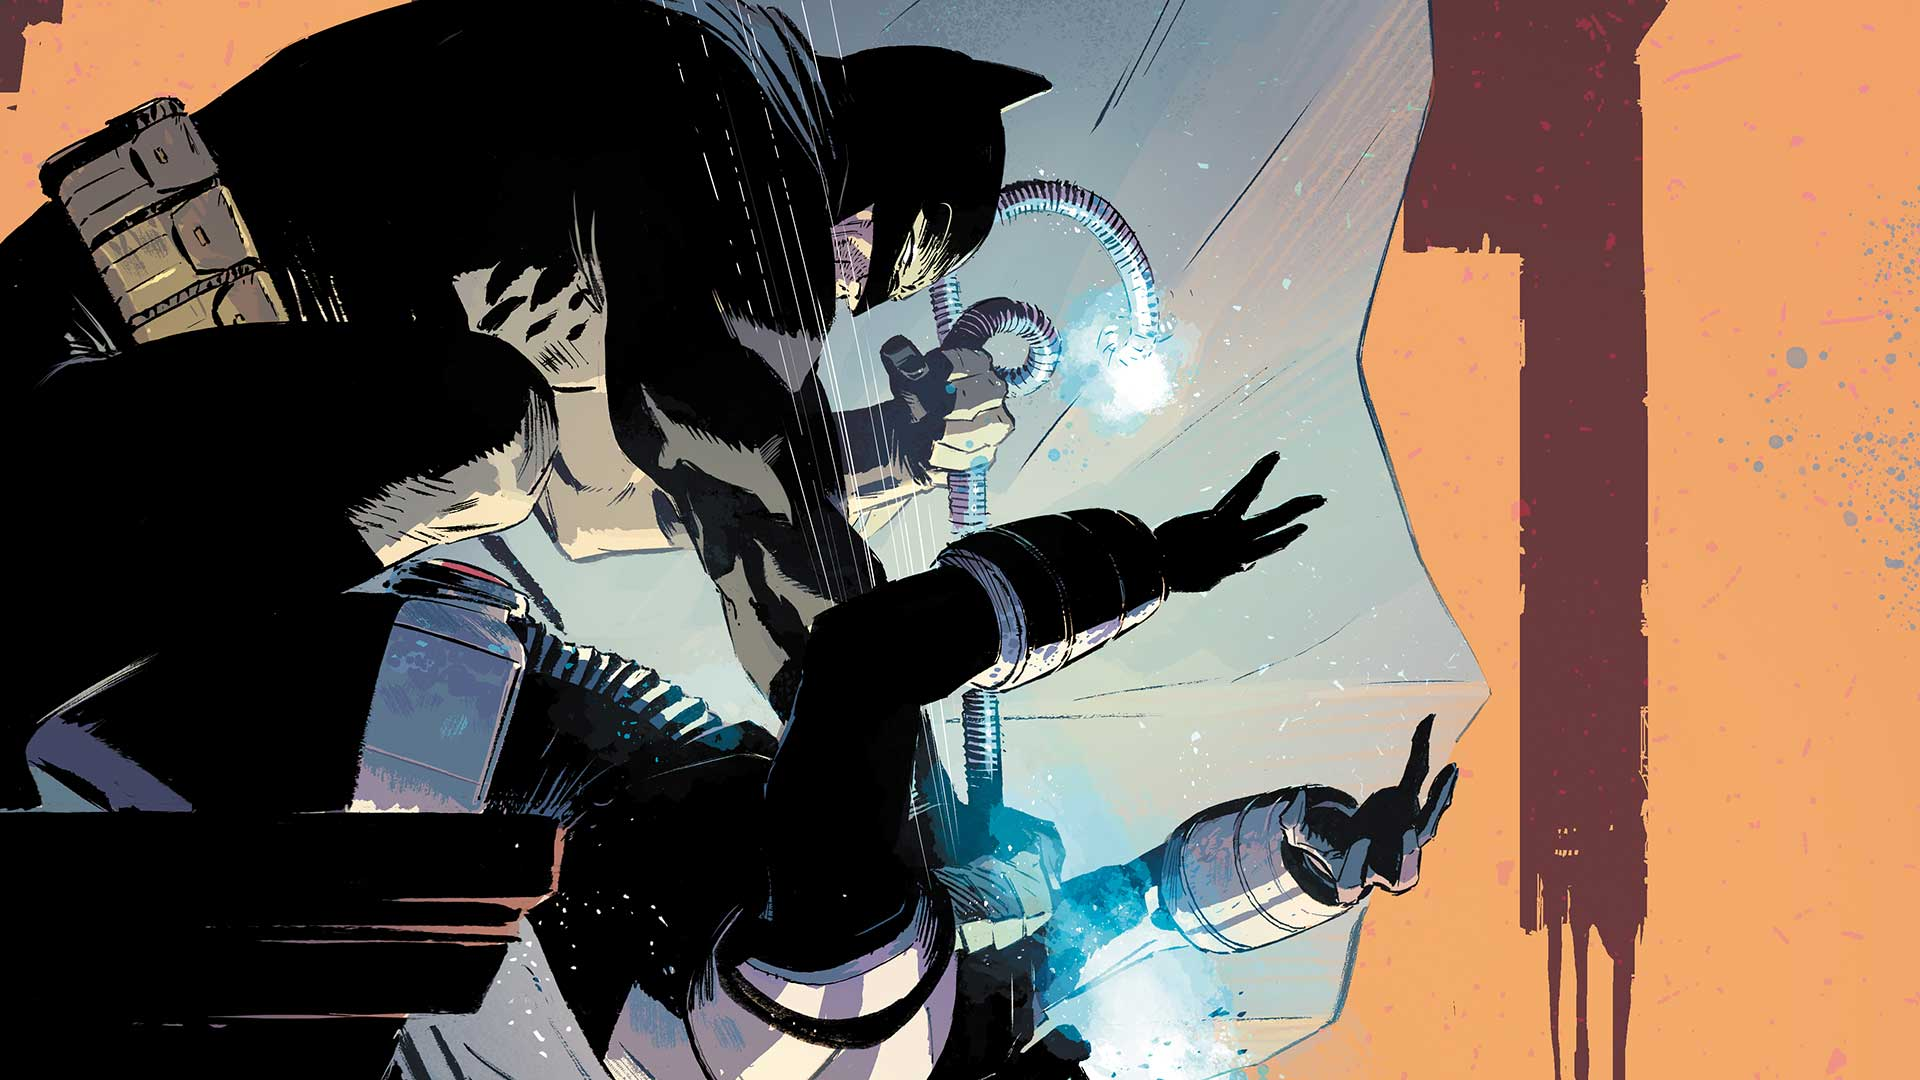 Batman #51 review: These may be 'Cold Days' but Batman's post-wedding blues burn with rage